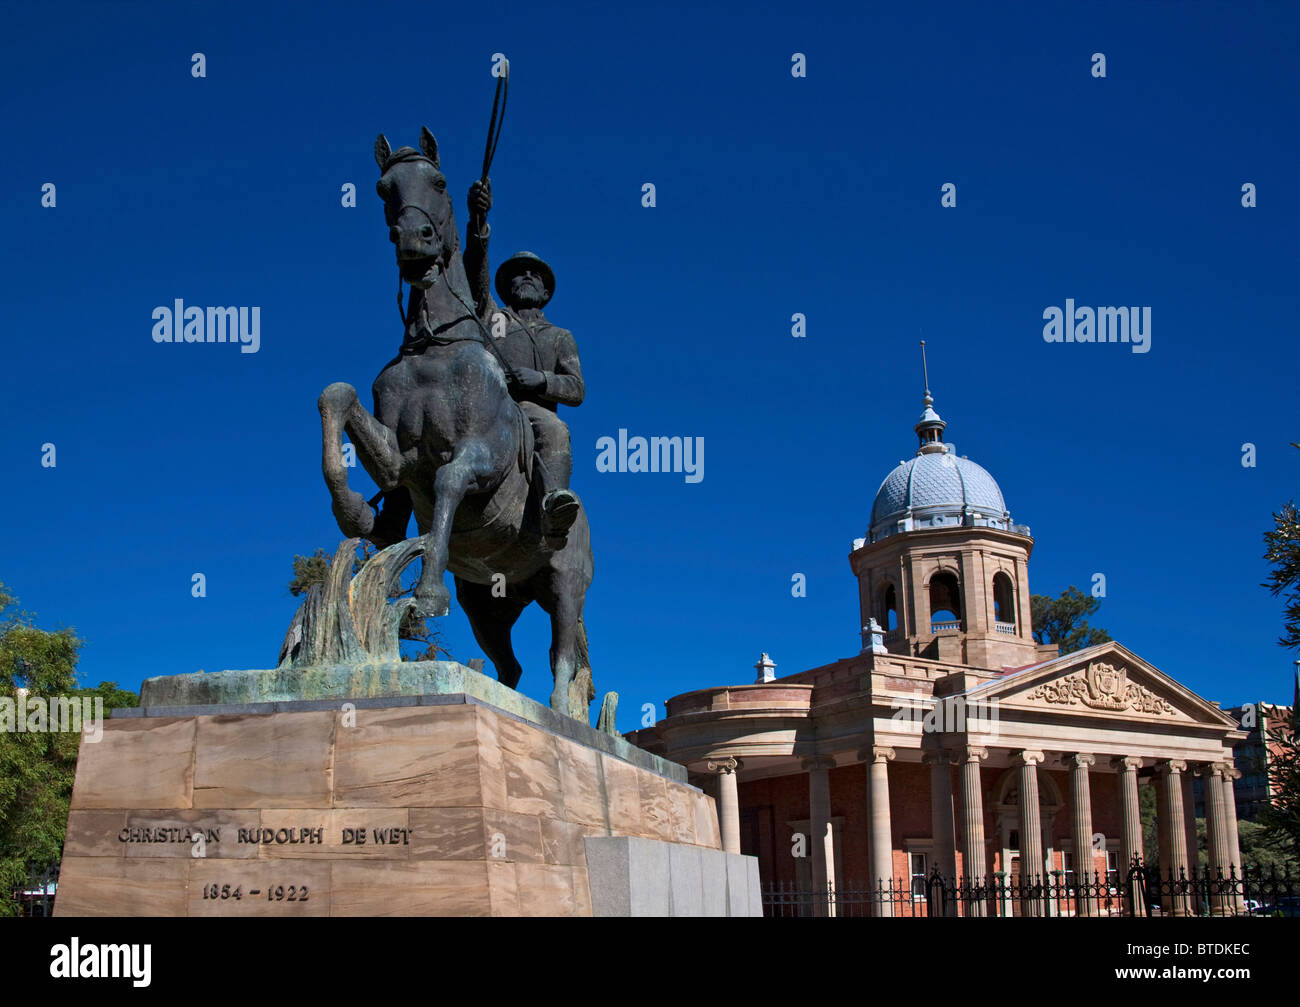 Statue of boer leader Christiaan Rudolph de Wet at  the 4th Raadsaal, the Parliament of the Boer Republic - Stock Image